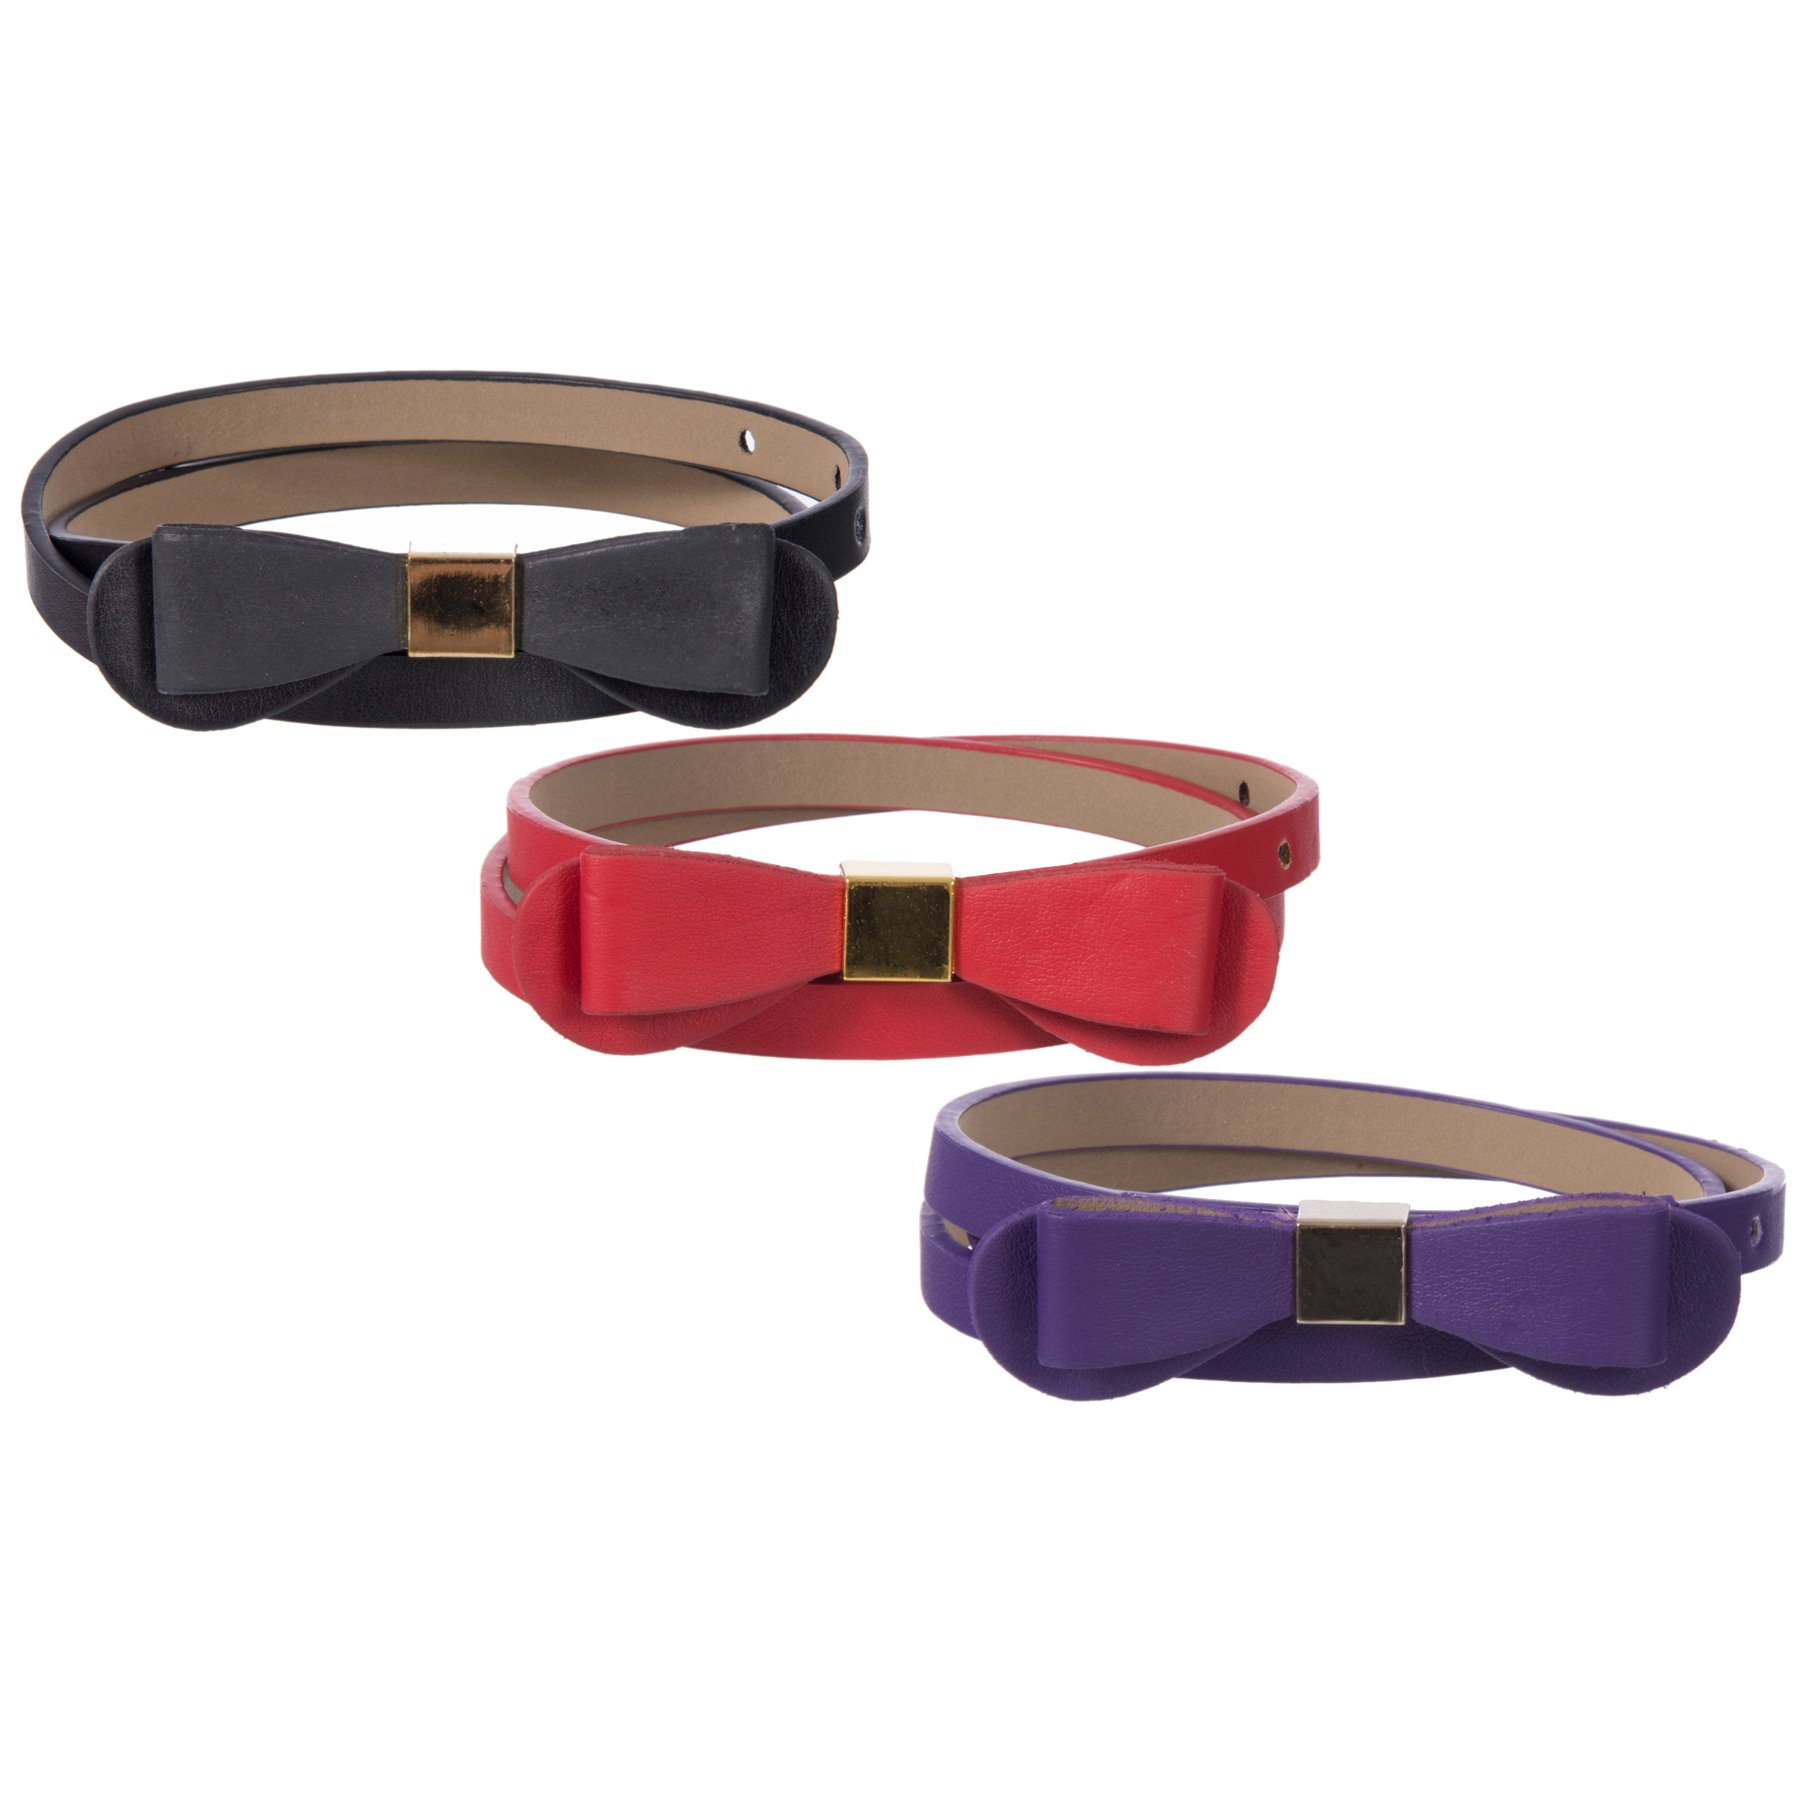 Sunny Belt Girl's 3-Pack Thin Waist Belts with Bow Details (Medium)